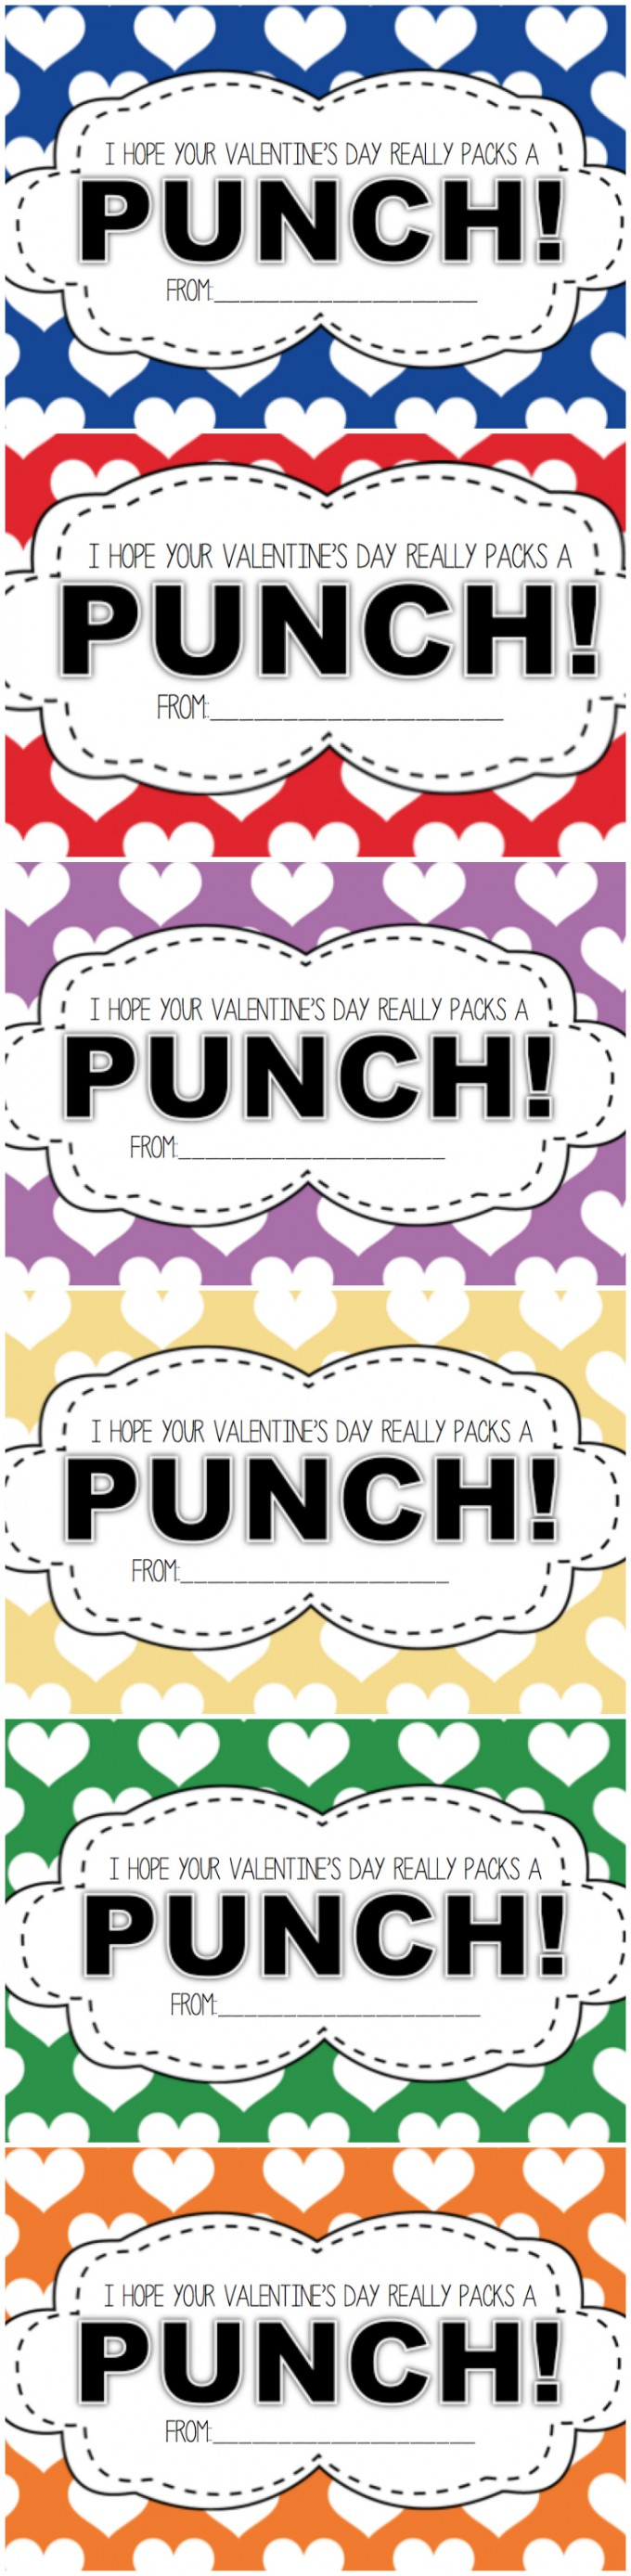 I Hope Your Valentine's Day Really Packs a Punch